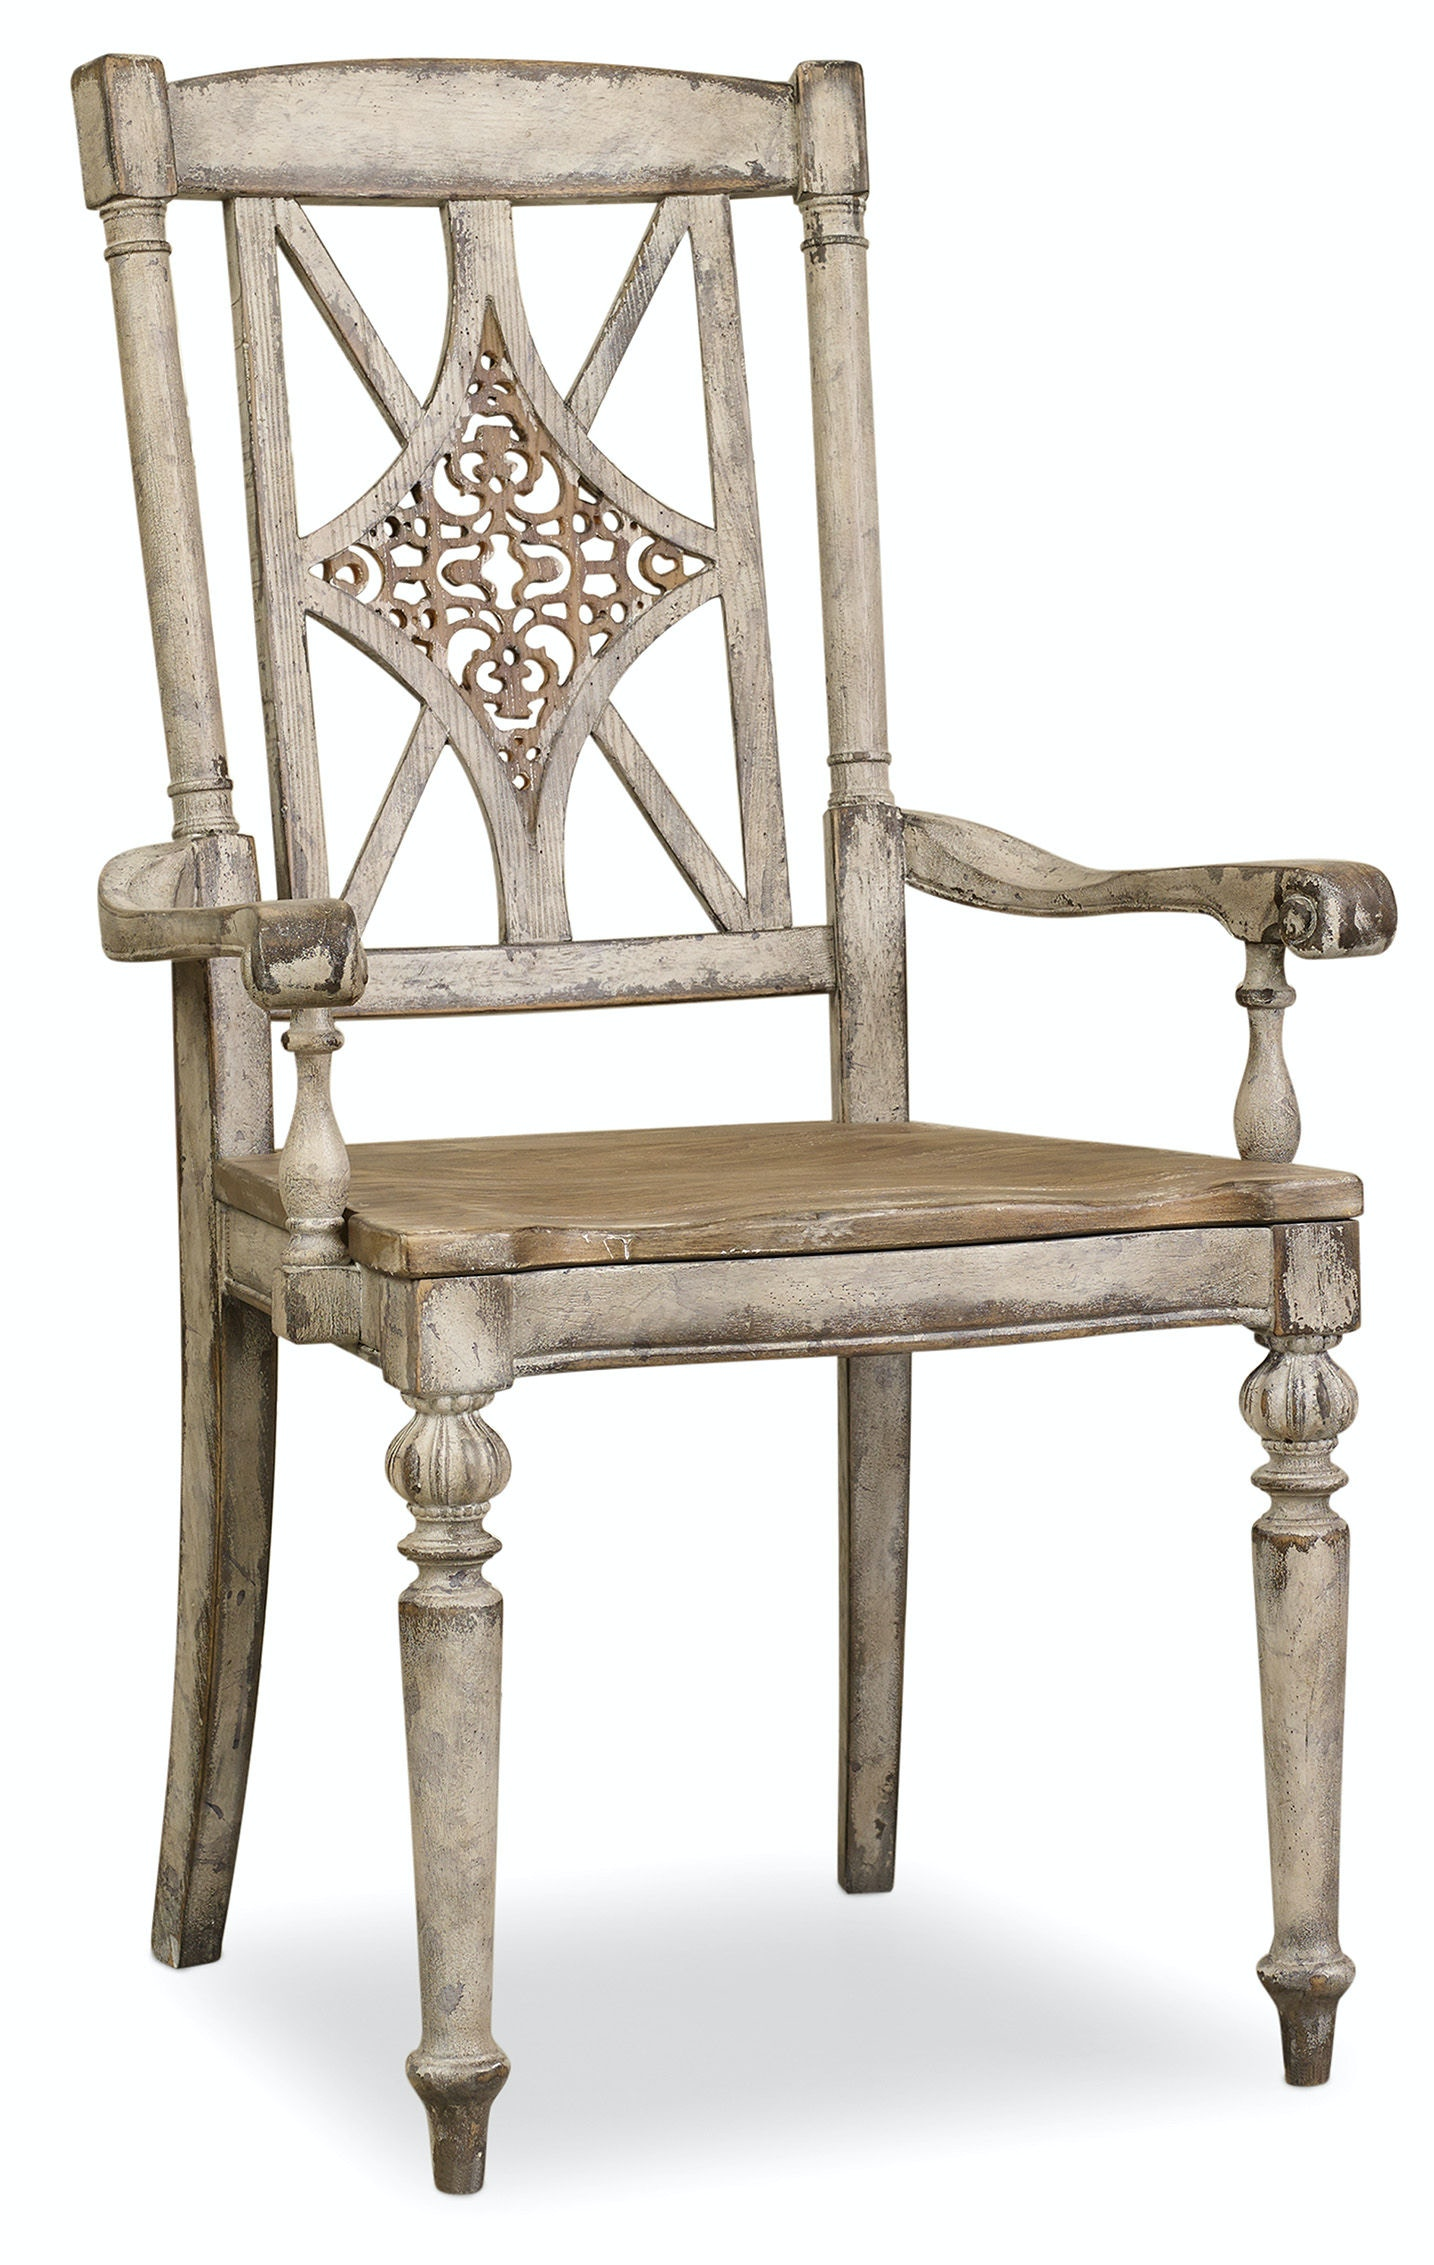 Hooker Furniture Dining Room Chatelet Fretback Arm Chair 5351-75300